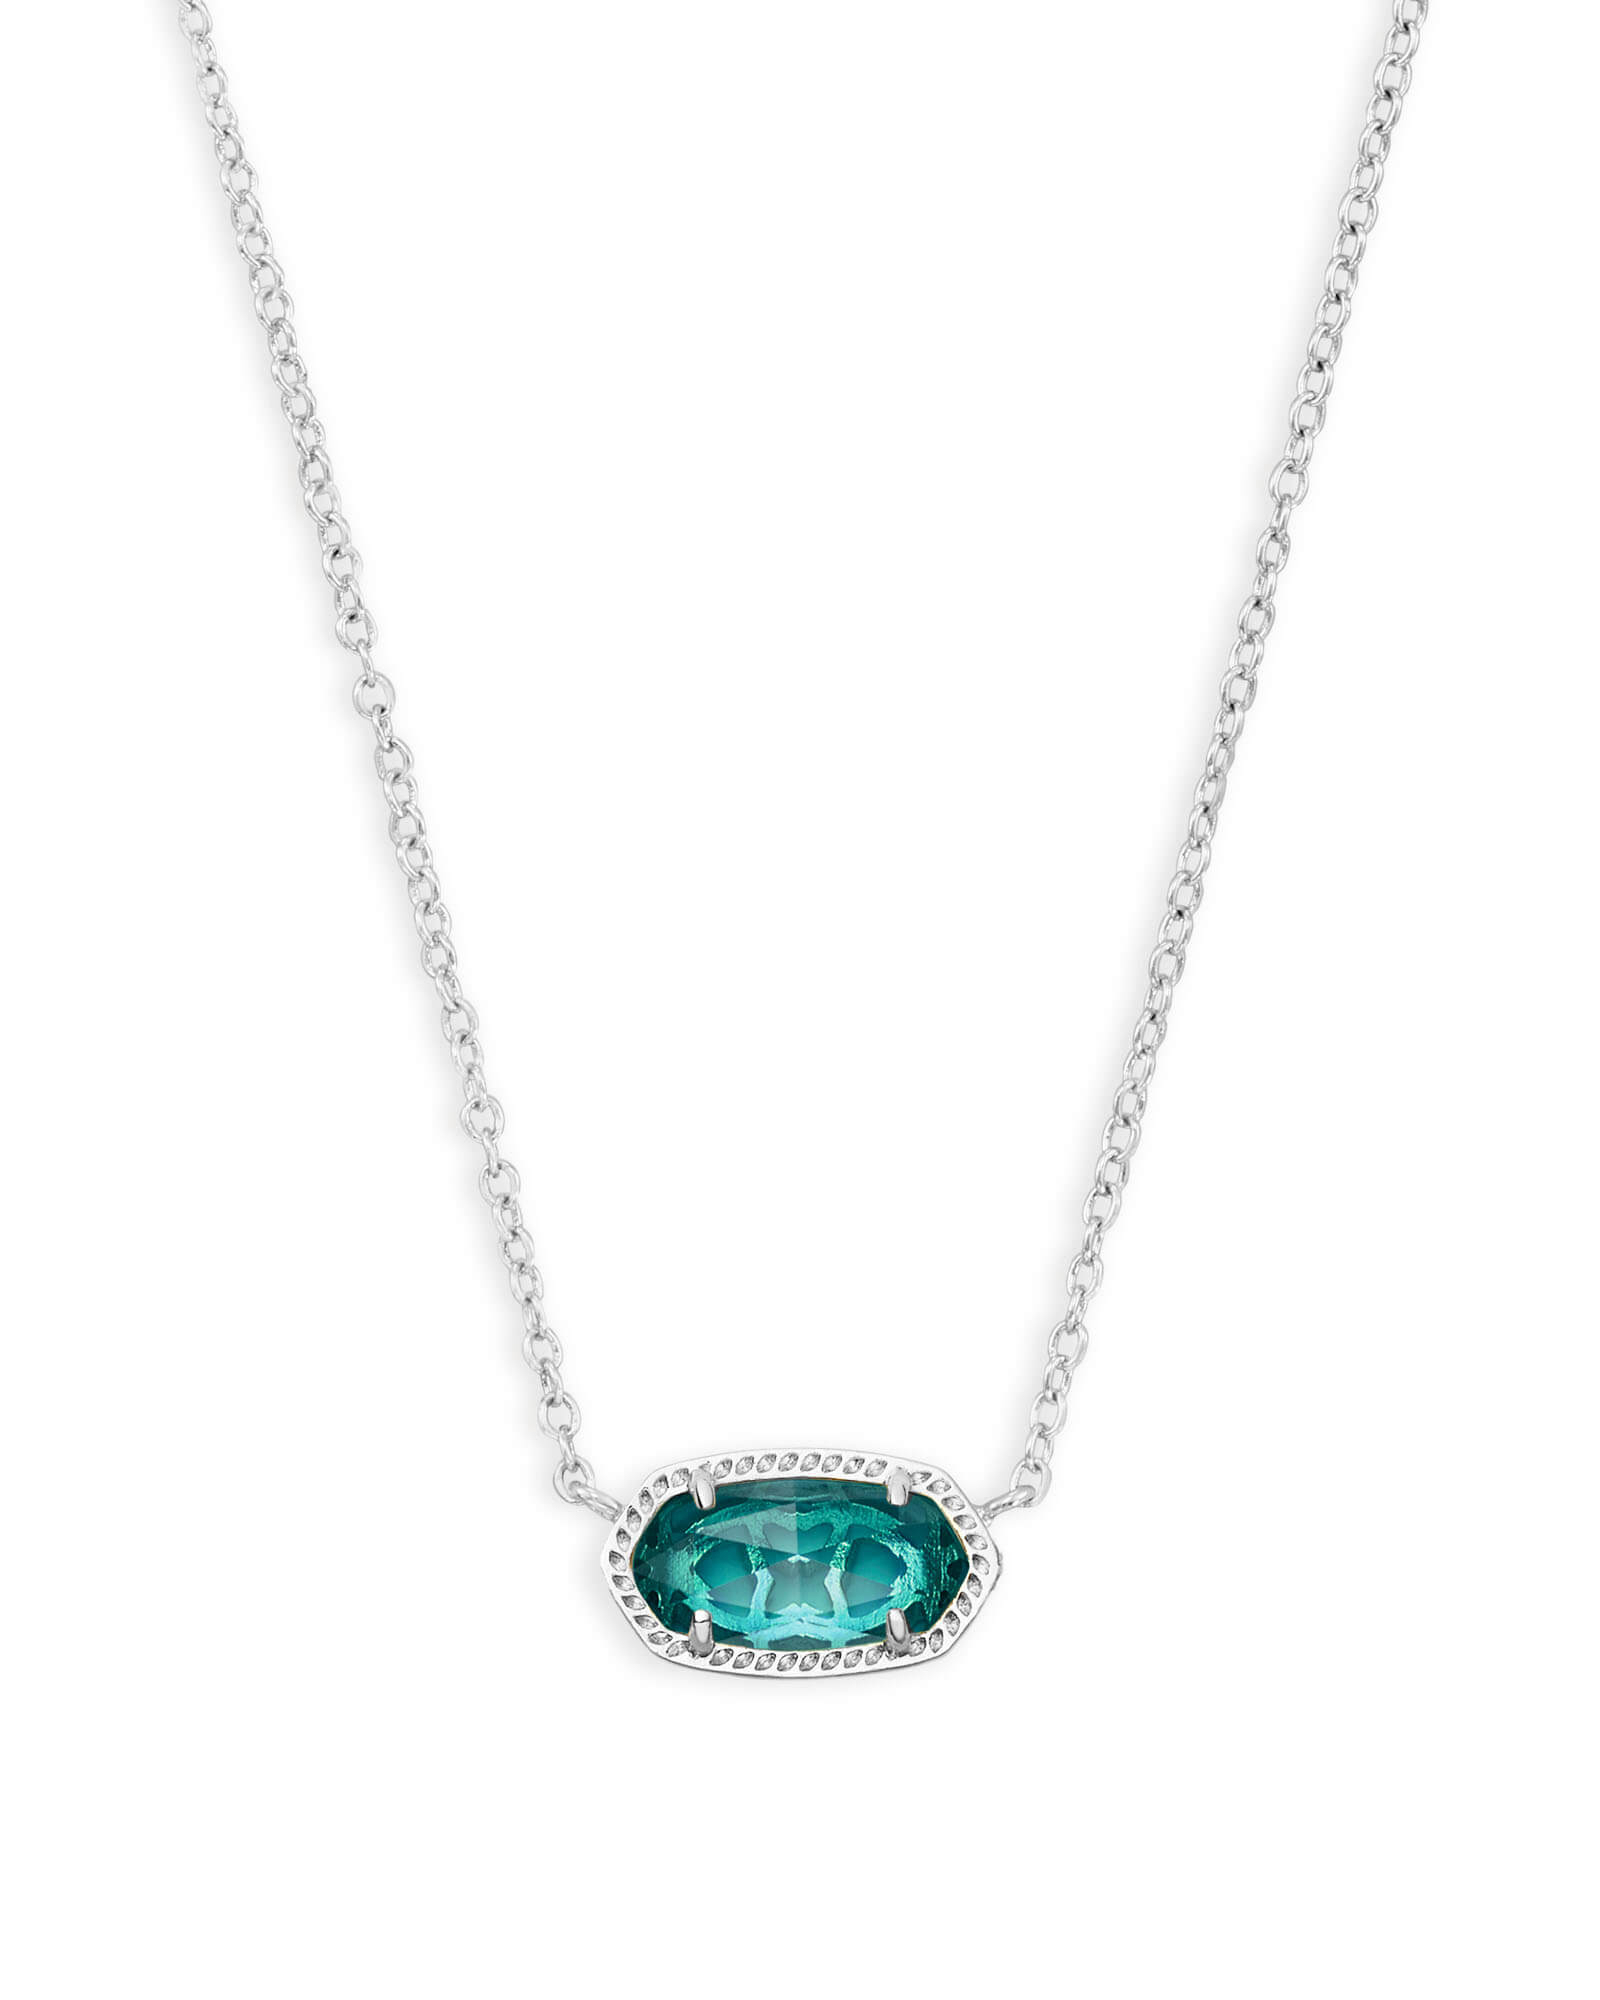 Elisa Silver Pendant Necklace In London Blue | Kendra Scott In Newest London Blue Crystal December Droplet Pendant Necklaces (View 7 of 25)